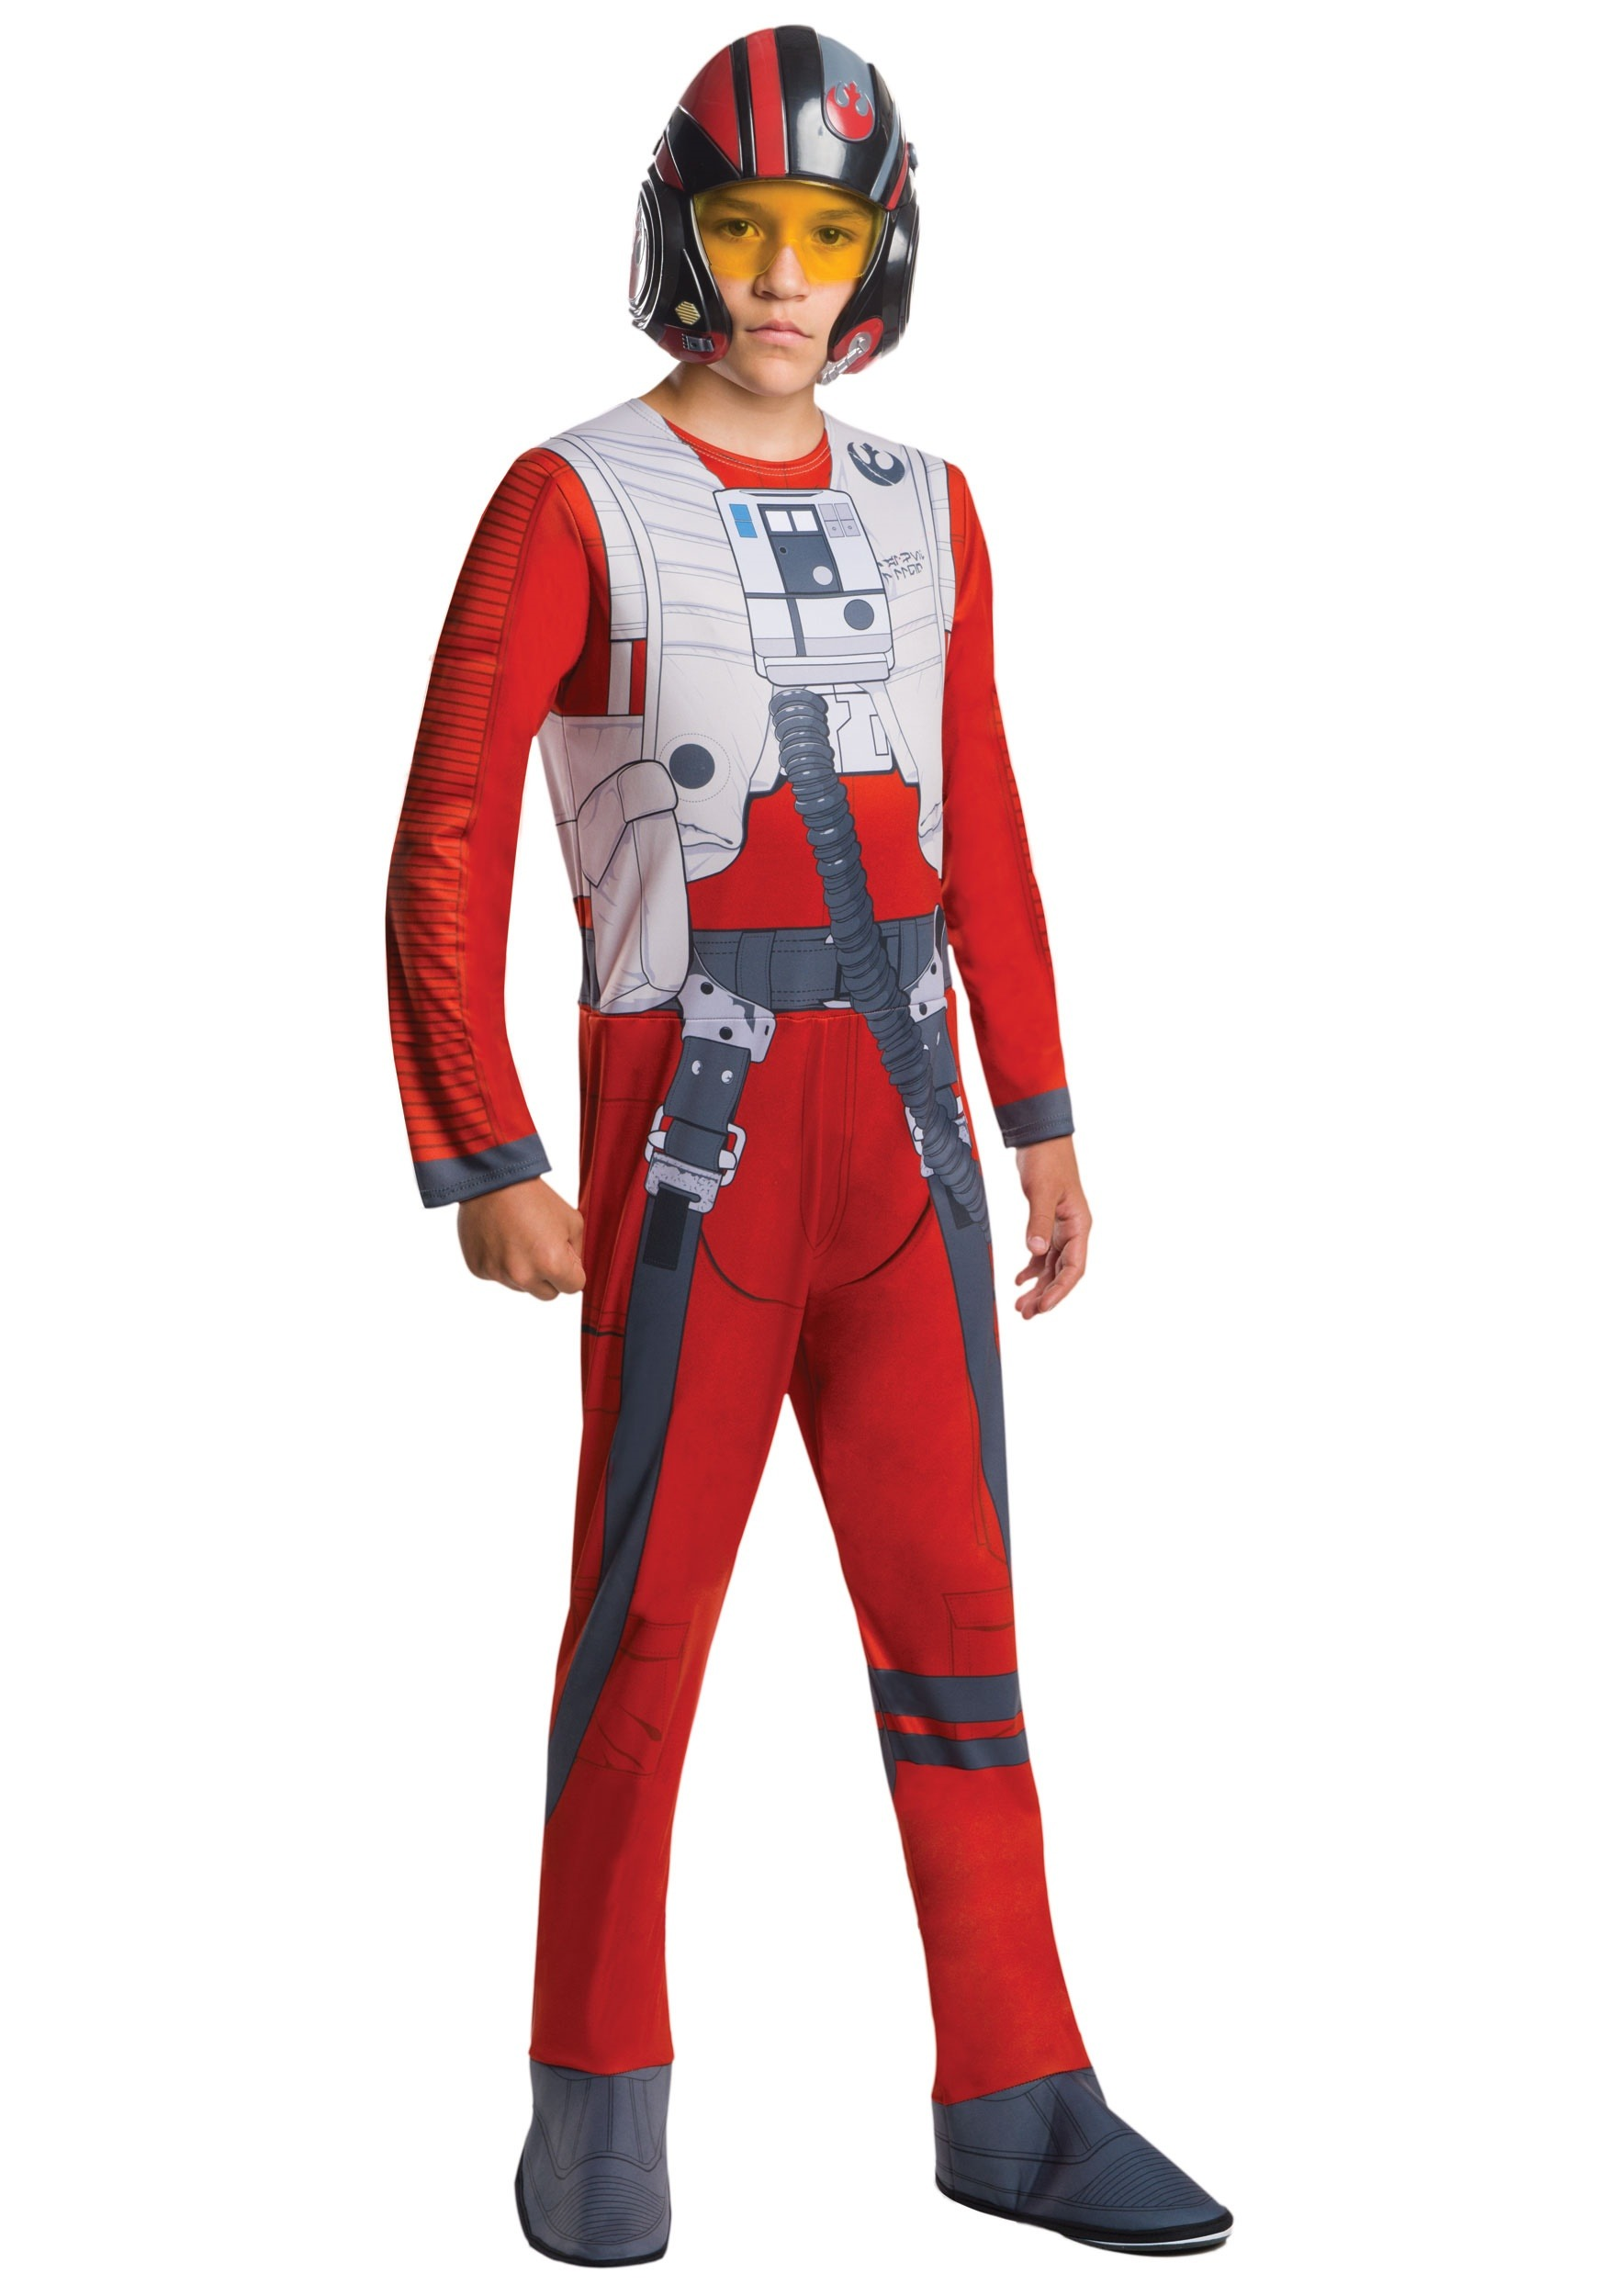 LICENSED POE X-WING FIGHTER EP7 STAR WARS CHILD BOYS DRESS UP HALLOWEEN COSTUME